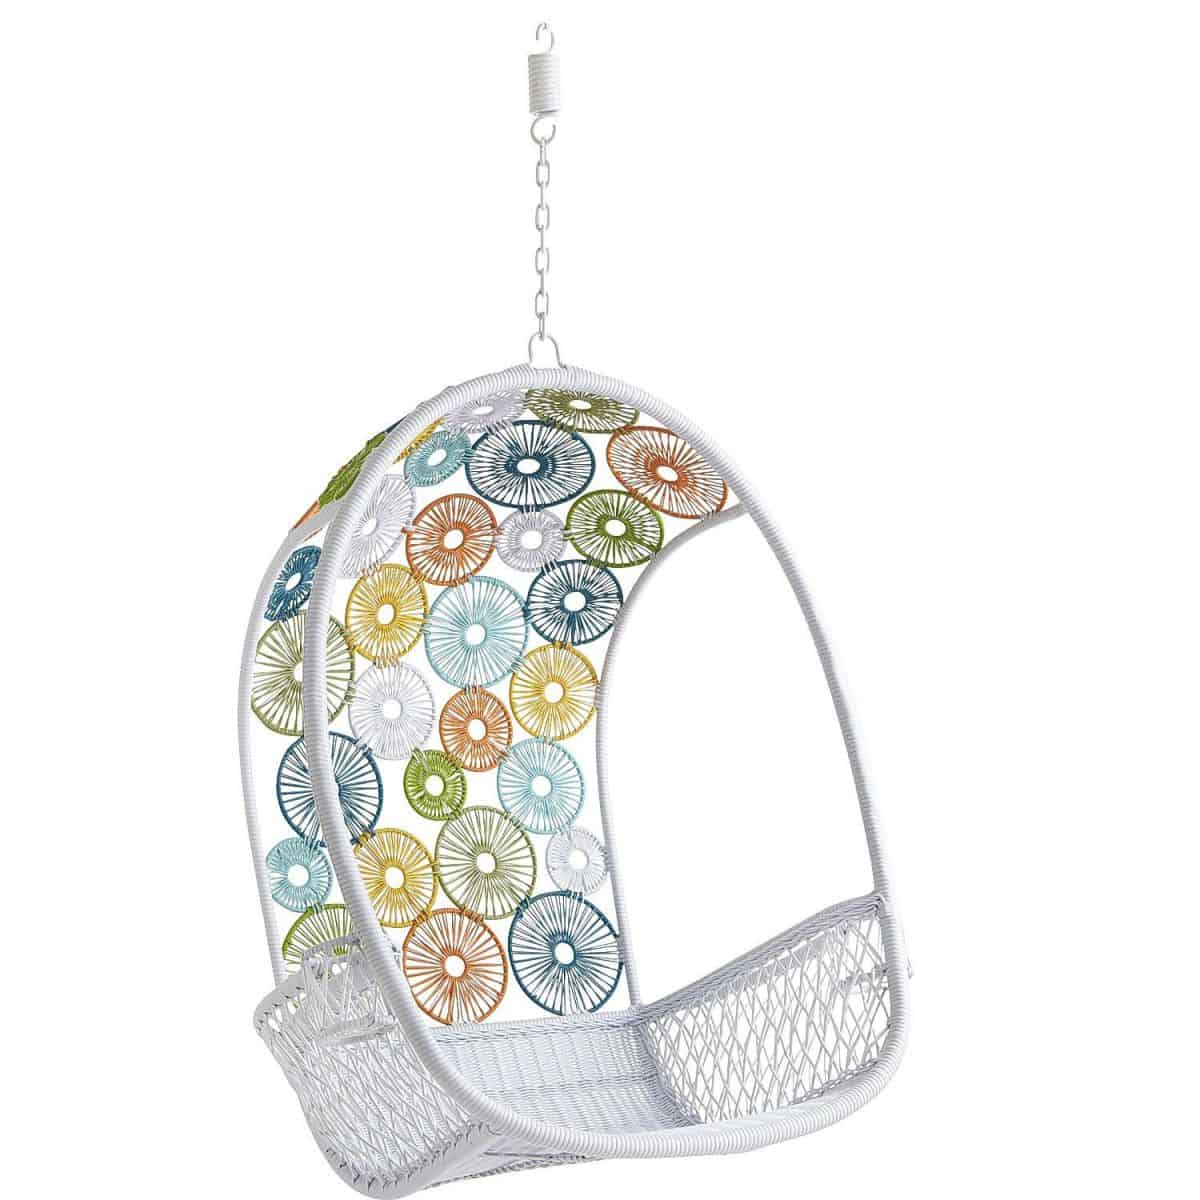 Pier 1 Swing Chair Hello Wonderful 10 Awesome Hanging Chairs For Kids